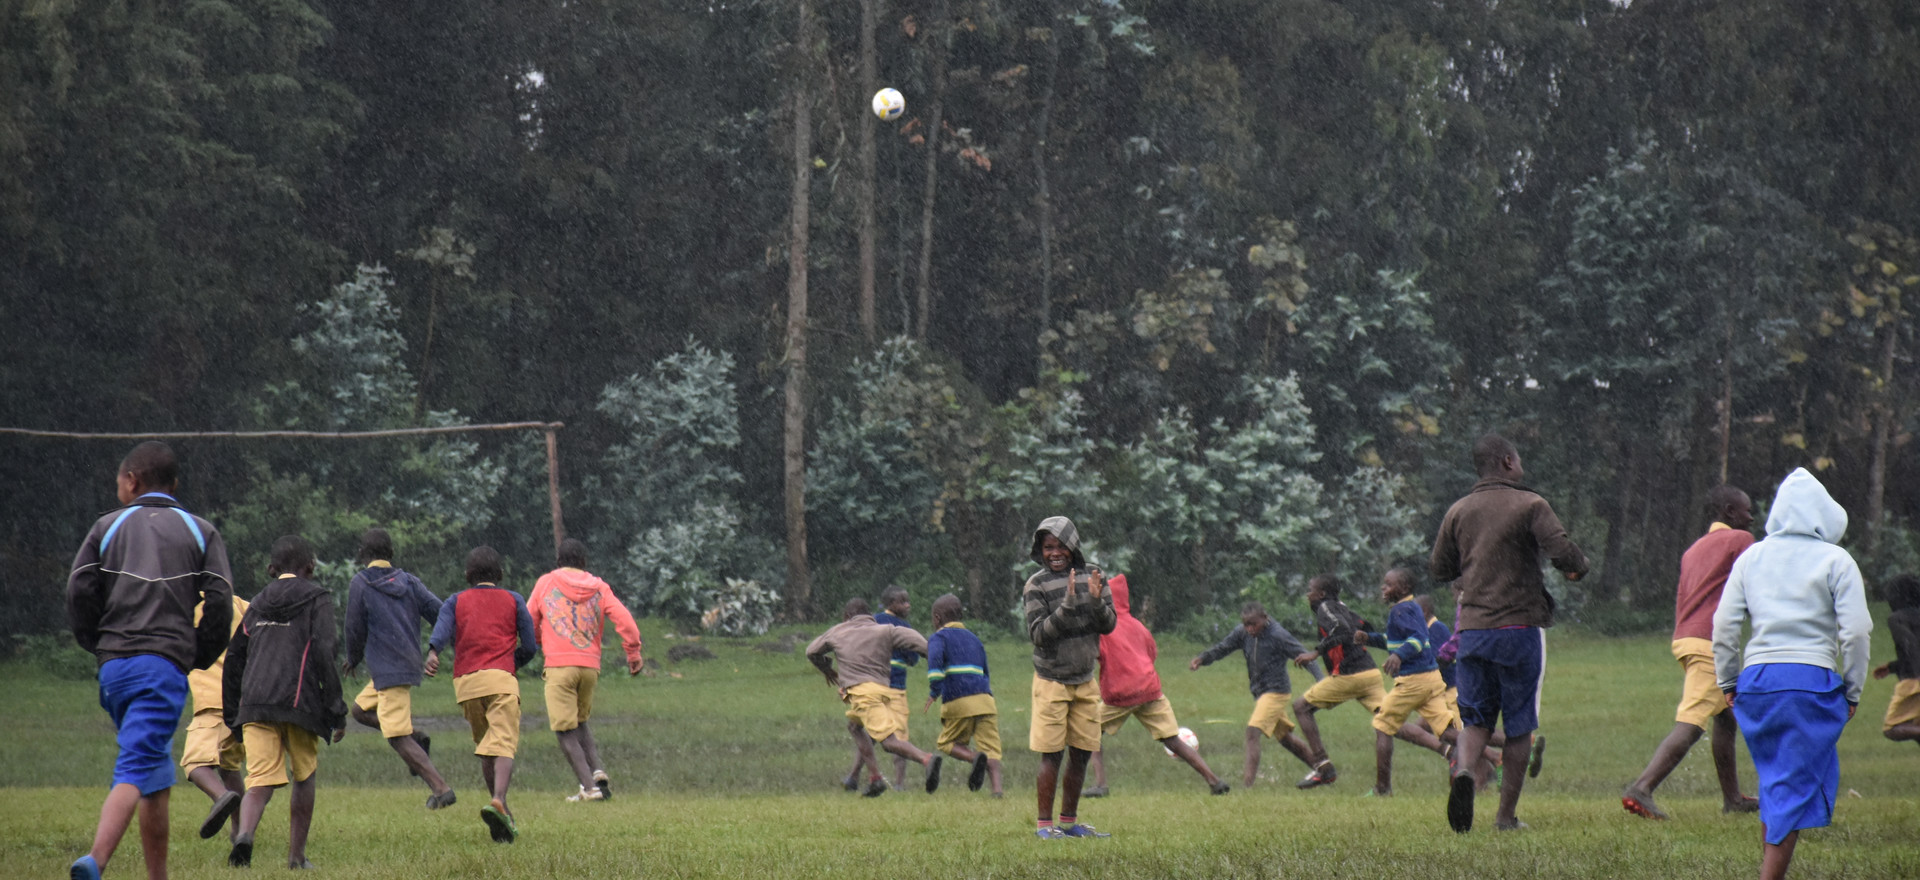 Rwanda Bisate School Playing Soccer in the Rain